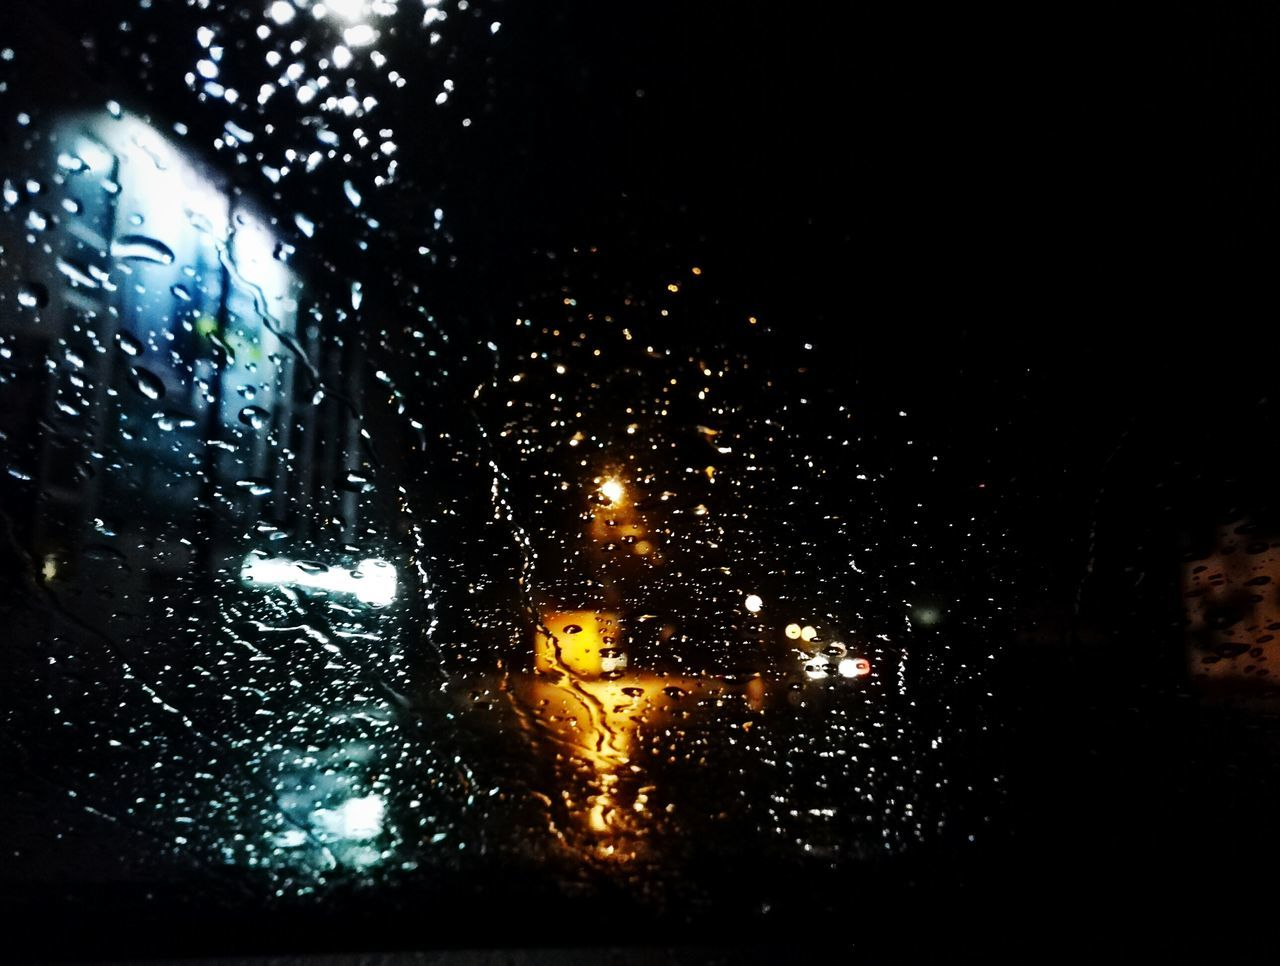 Car Horizontal Night No People Land Vehicle Rain Drop Wet Car Transportation Sky Vehicle Interior Land Vehicle Night No People Rainy Season Water Close-up Horizontal RainDrop Nature Outdoors